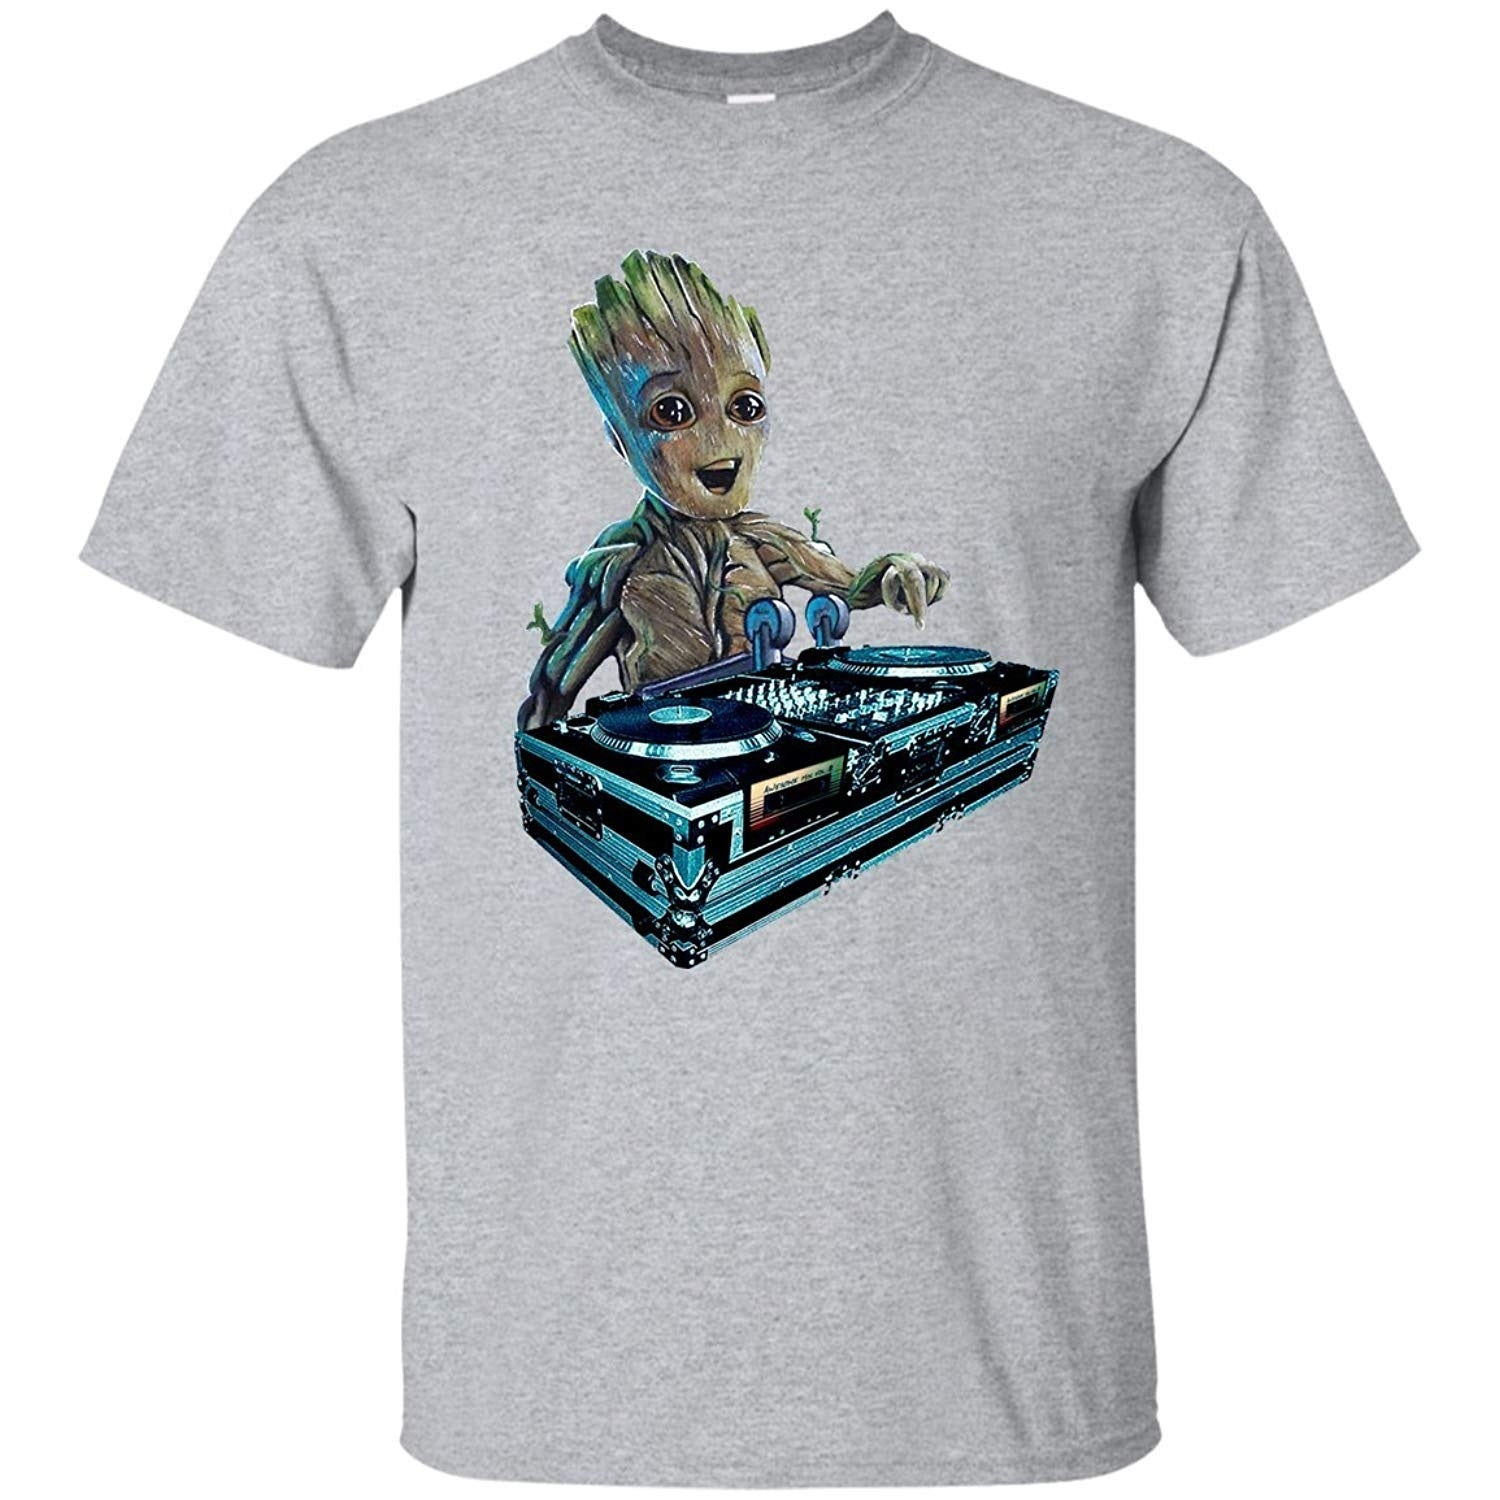 746ee58932 Mens Unisex Funny Baby Groot DJ Guardians Galaxy Cotton T-Shirt ...